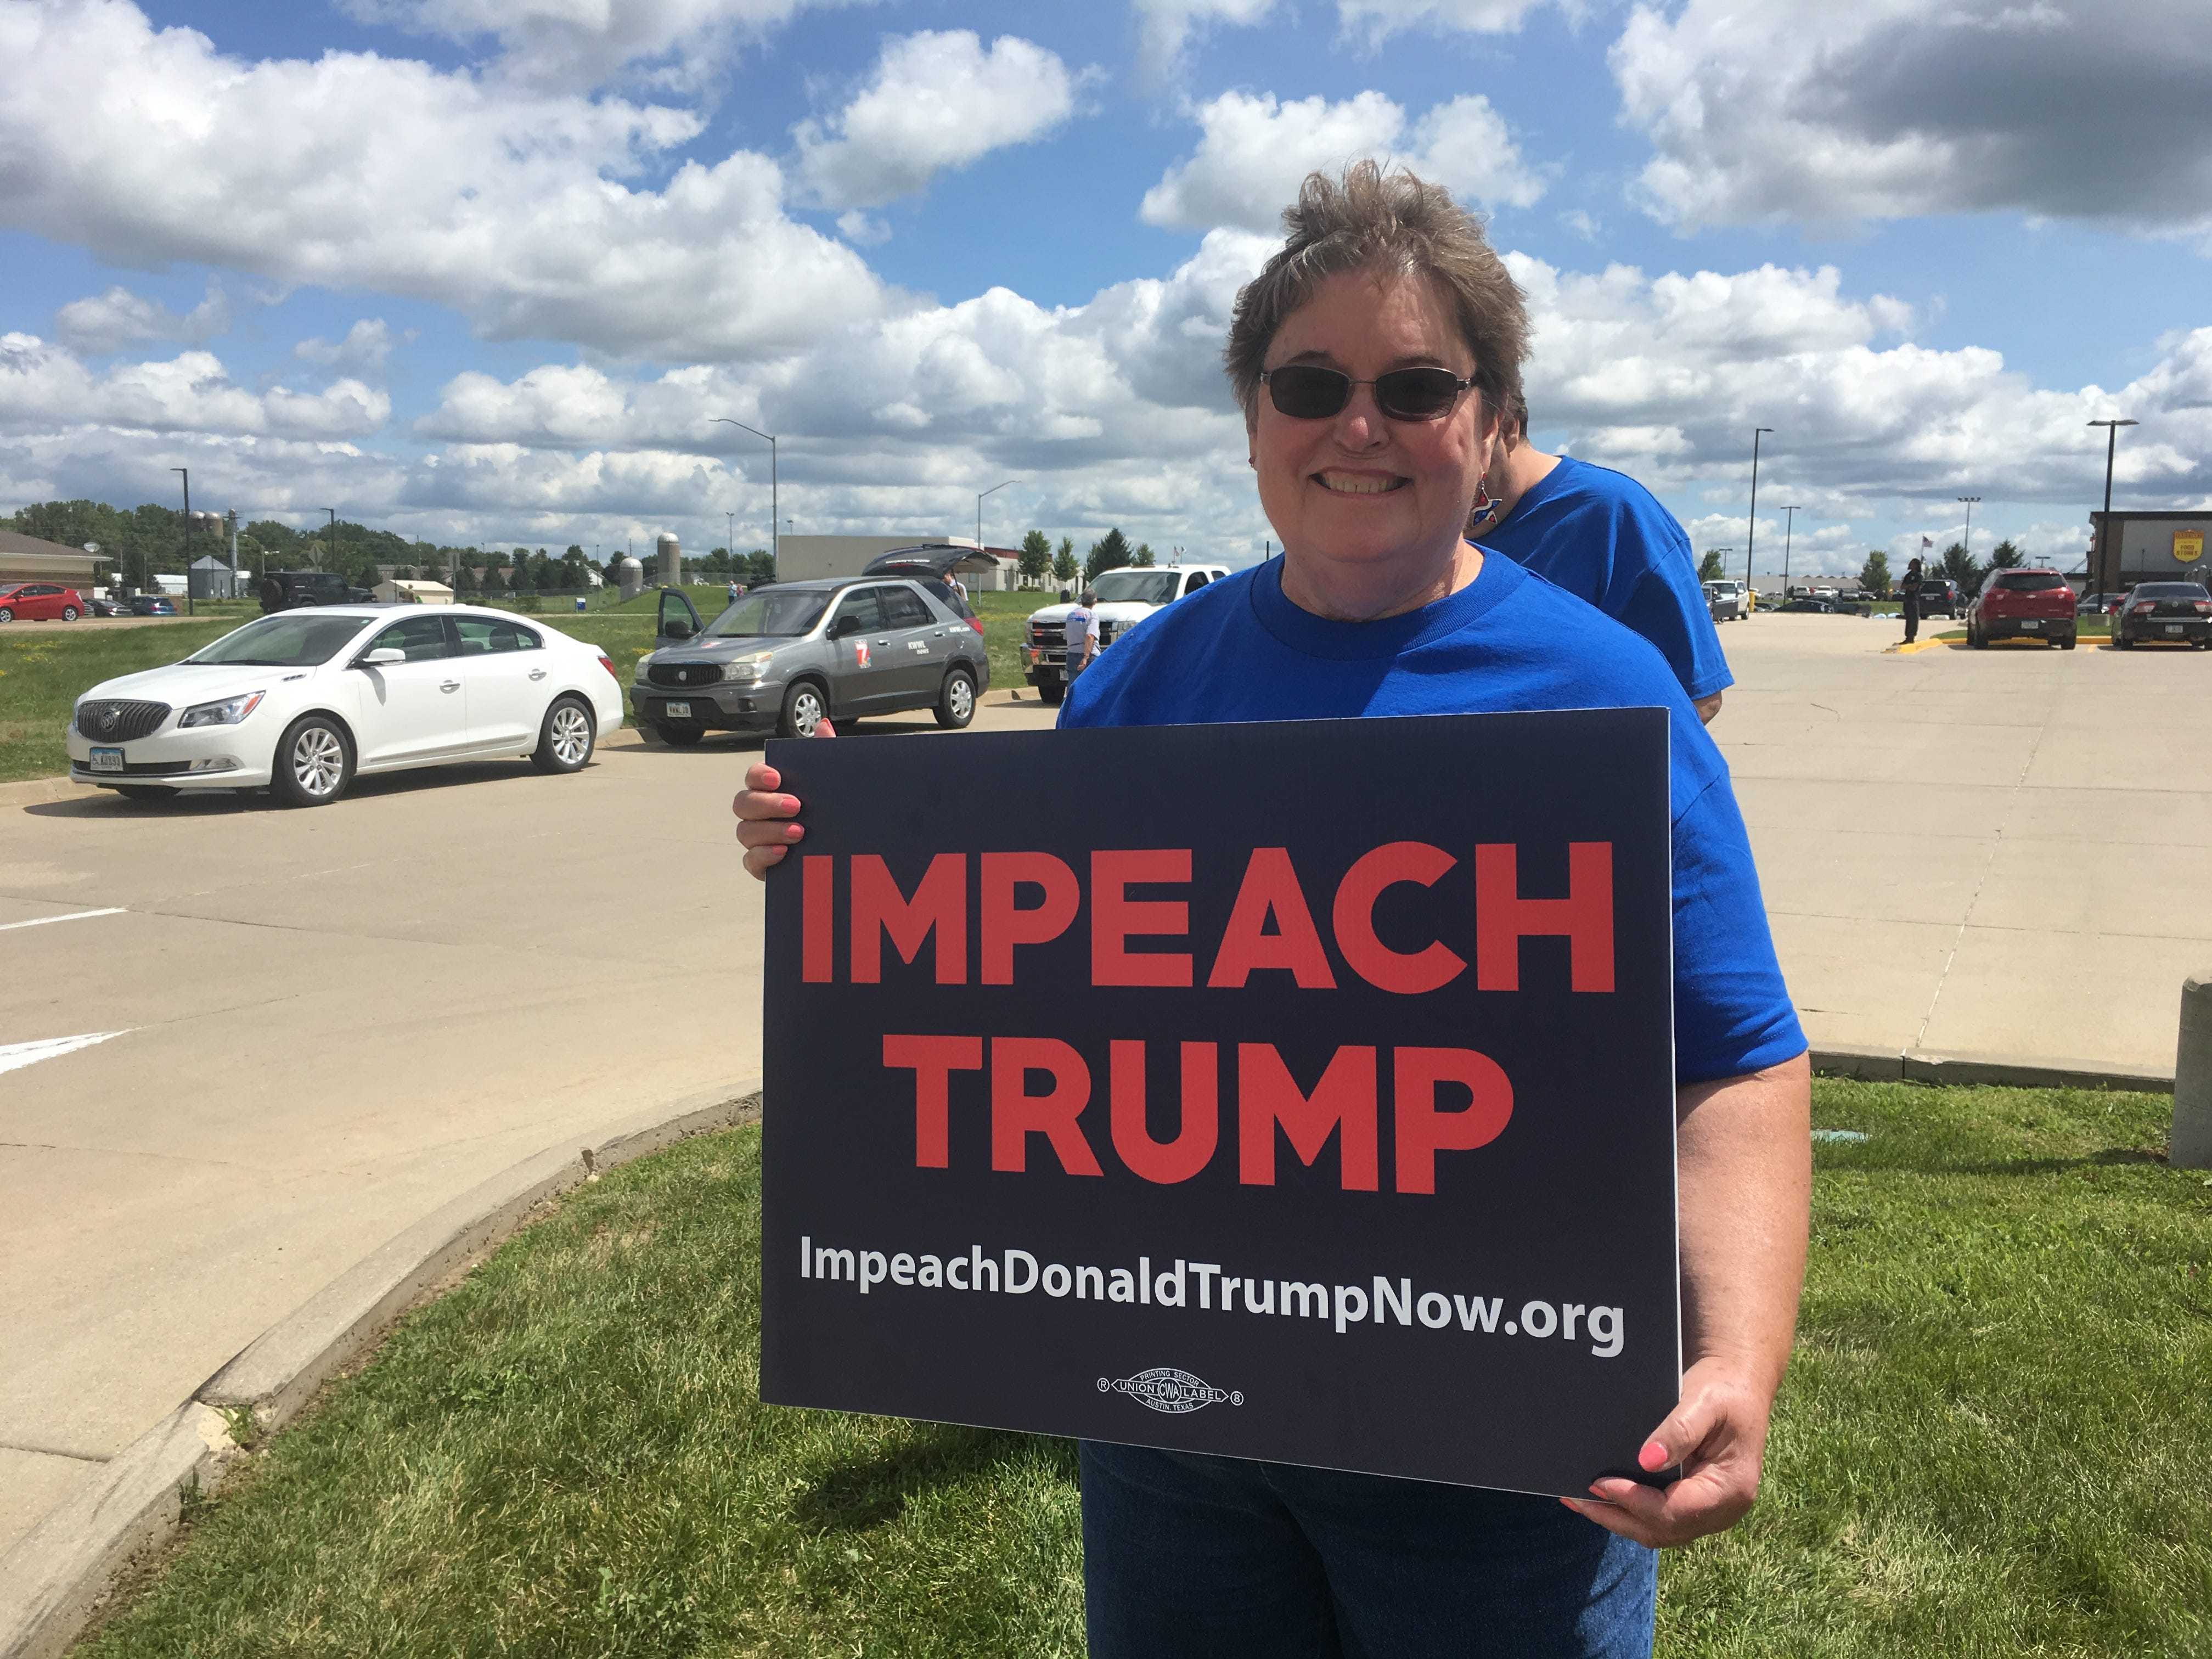 Kathy Geronzin, 70, of Maquoketa, a semi-retired teacher-librarian, demonstrates in Peosta Thursday, July 26, 2018 against President Donald Trump during his visit to Dubuque County.